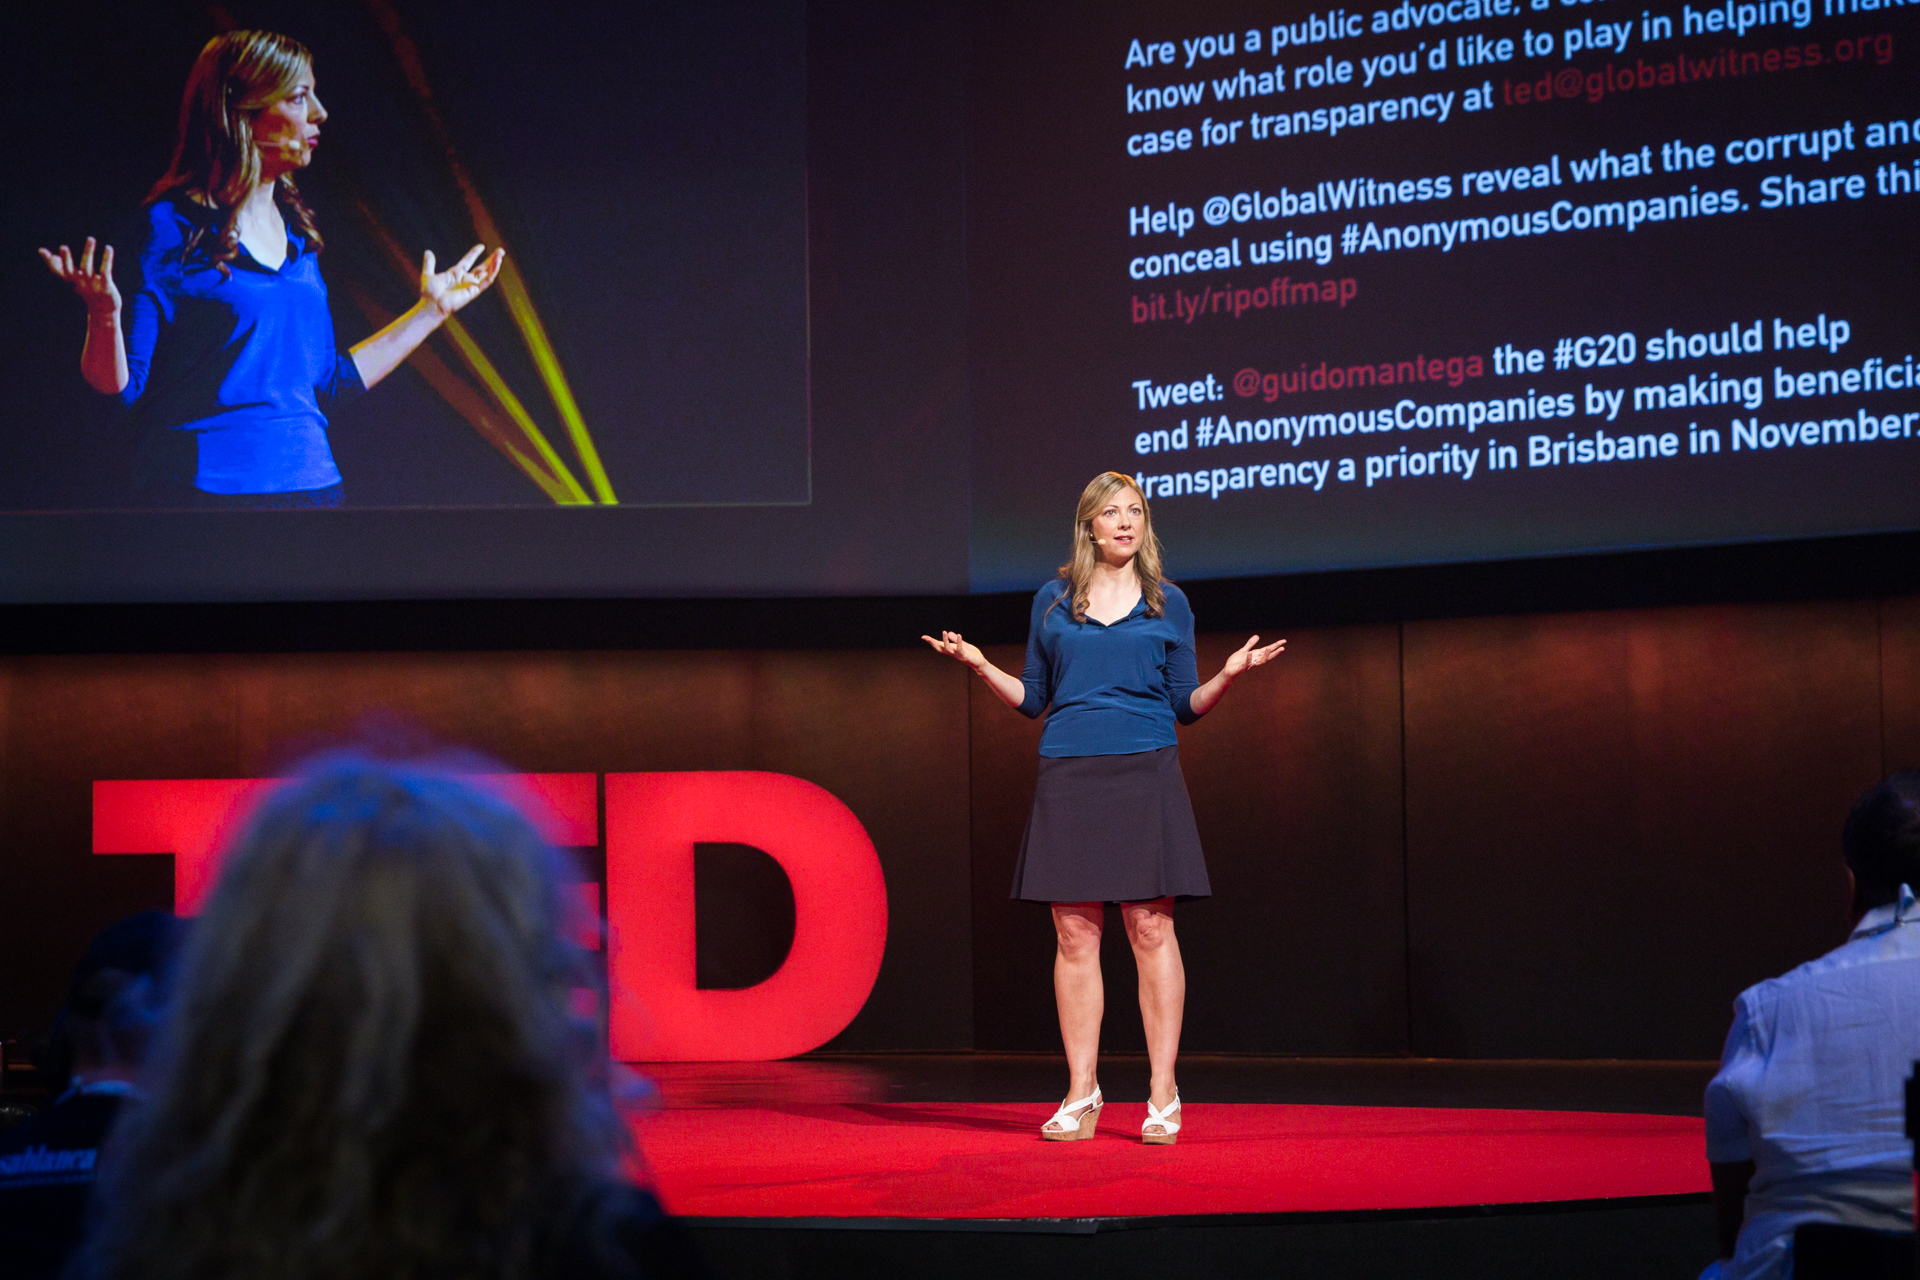 TED Prize winner Charmian Gooch speaking at TEDGlobal 2014. Photo: James Duncan Davidson/TED